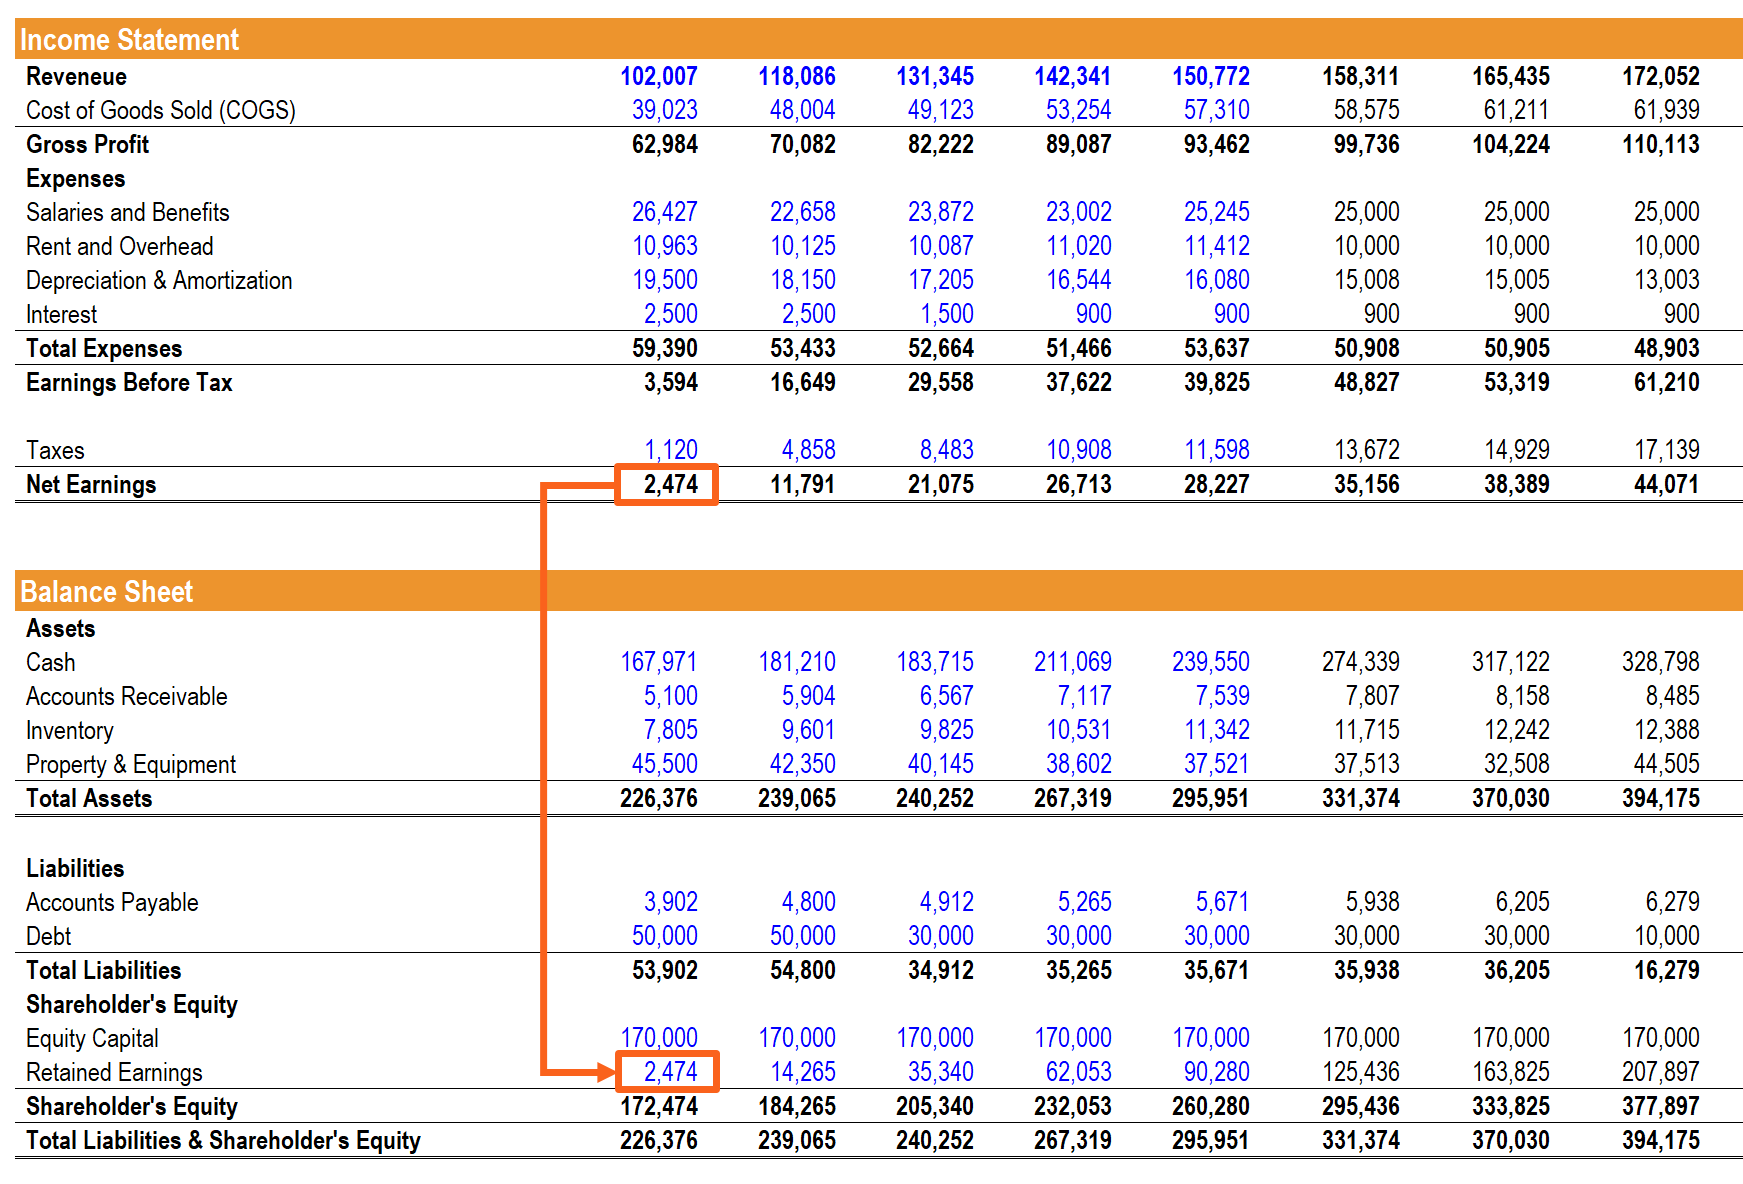 Linking income statement to balance sheet